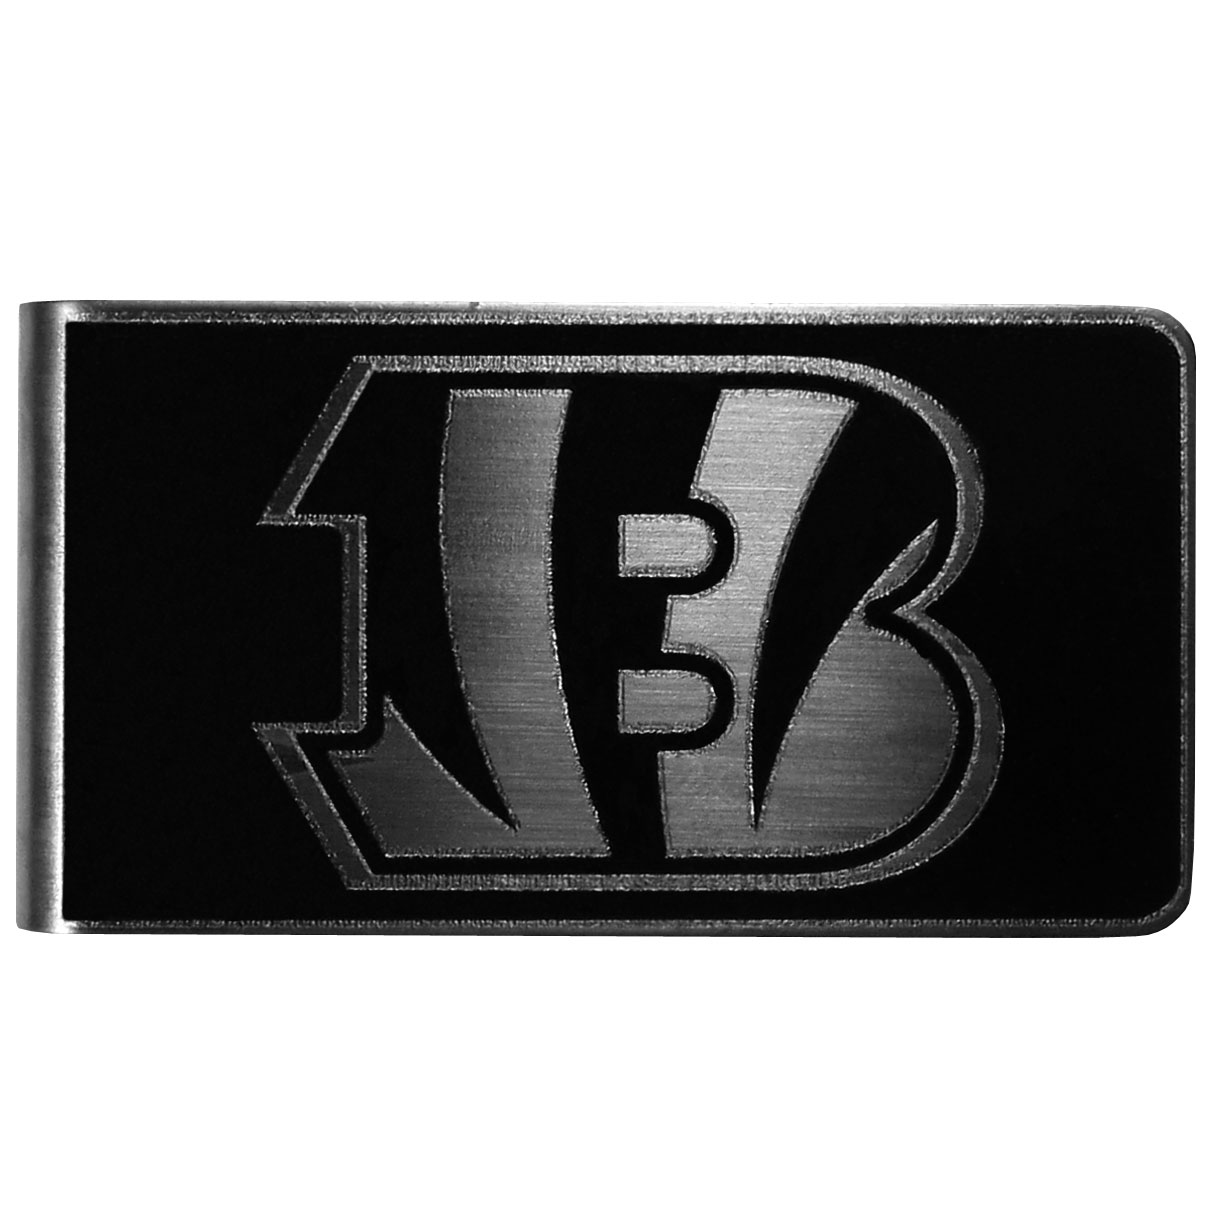 Cincinnati Bengals Black and Steel Money Clip - Our monochromatic steel money clips have a classic style and superior quality. The strong, steel clip has a black overlay of the Cincinnati Bengals logo over the brushed metal finish creating a stylish men's fashion accessory that would make any fan proud.